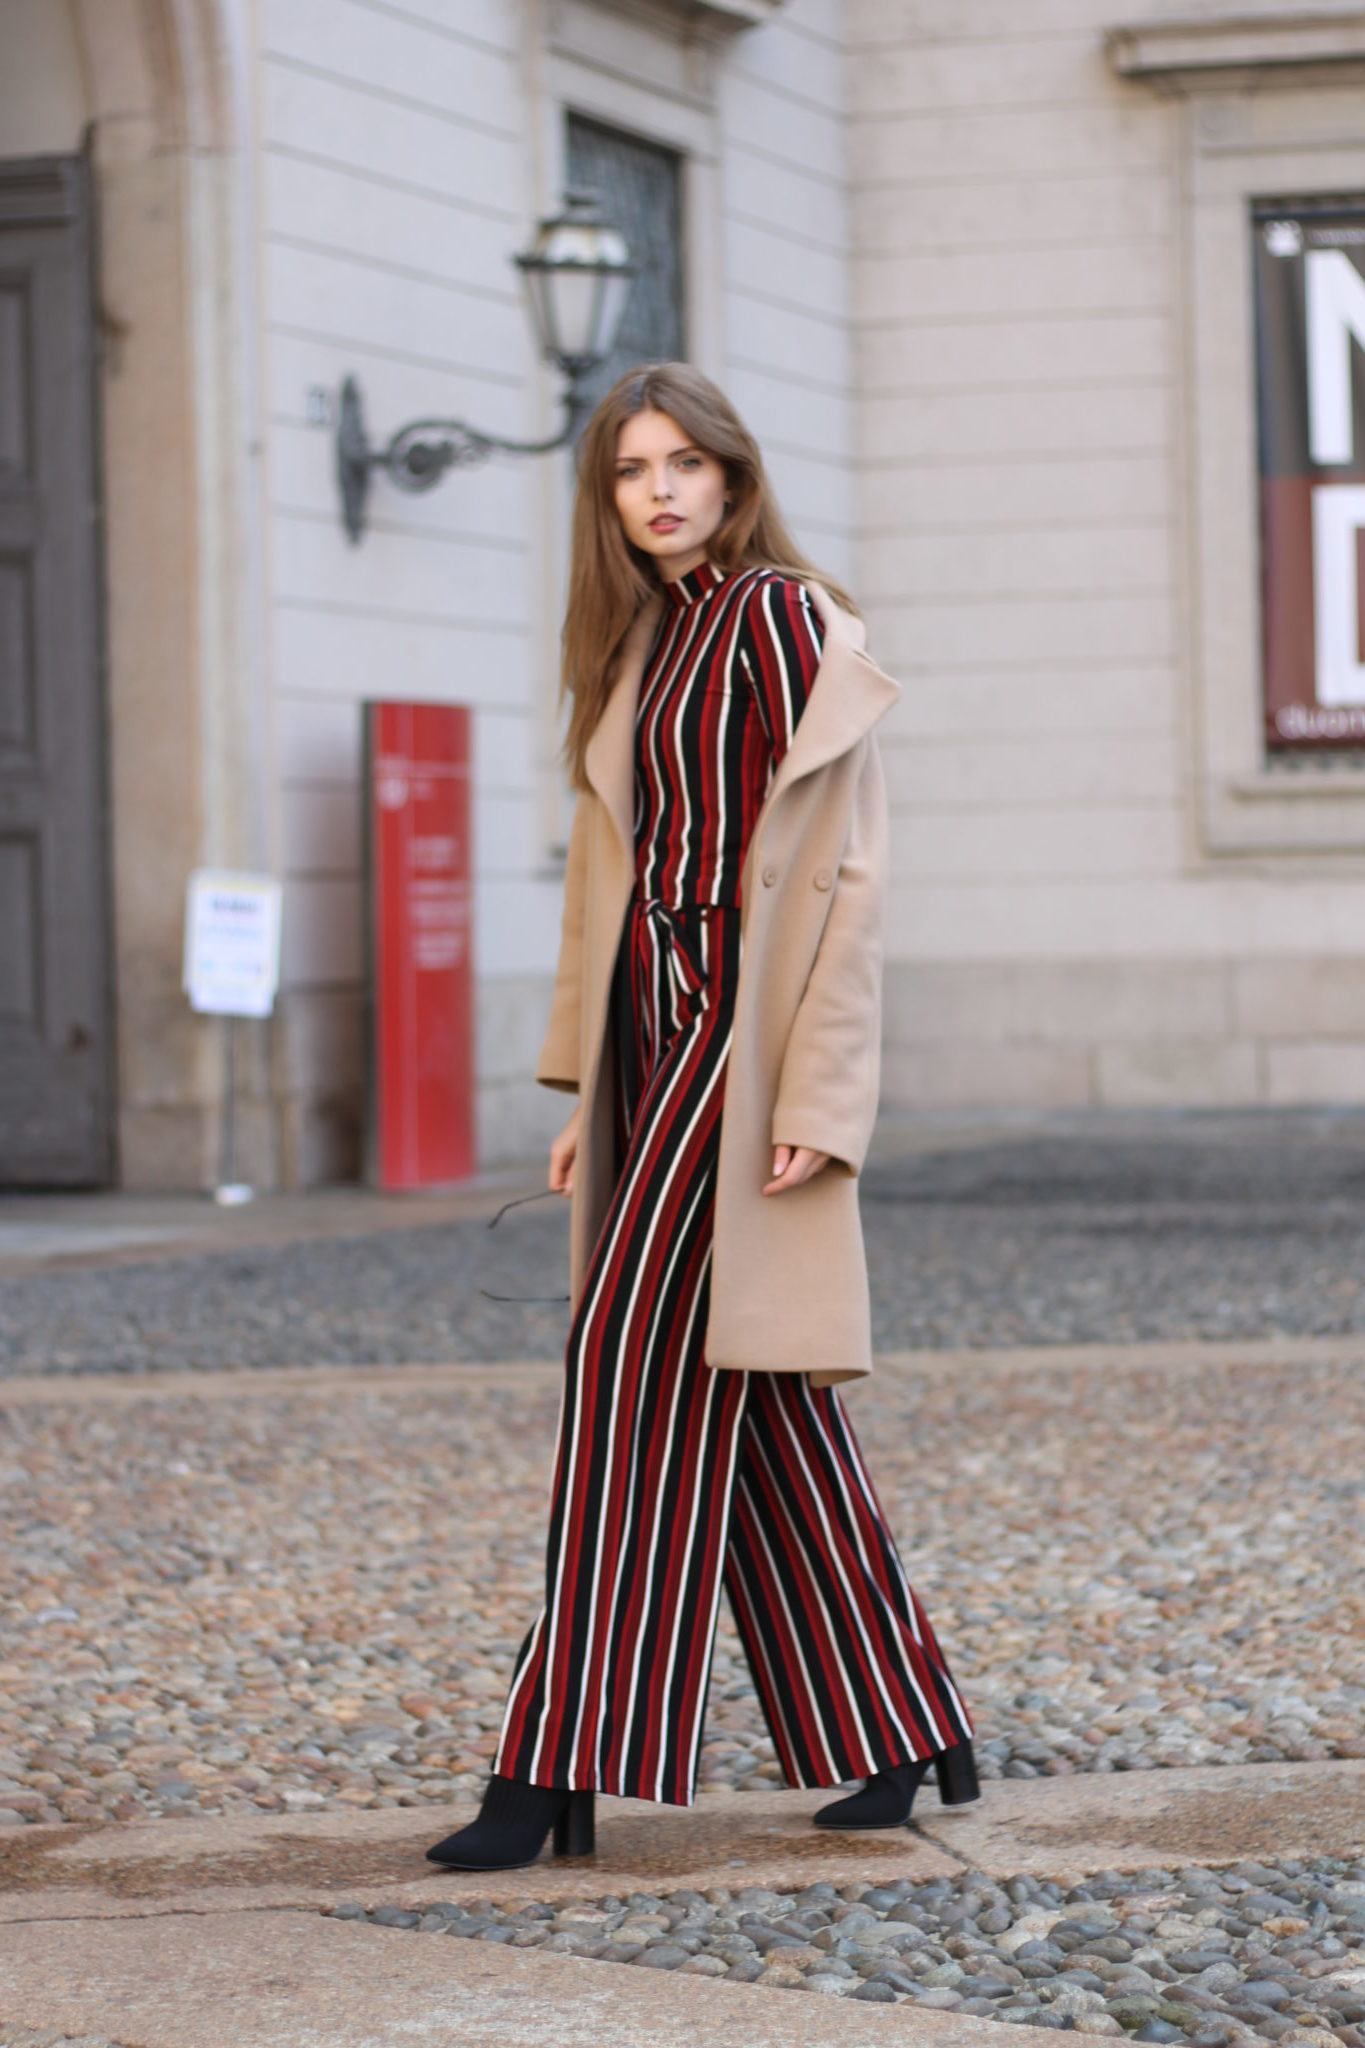 IMG 1585 e1519228148309 - BOLD STRIPED JUMPSUIT I MILAN